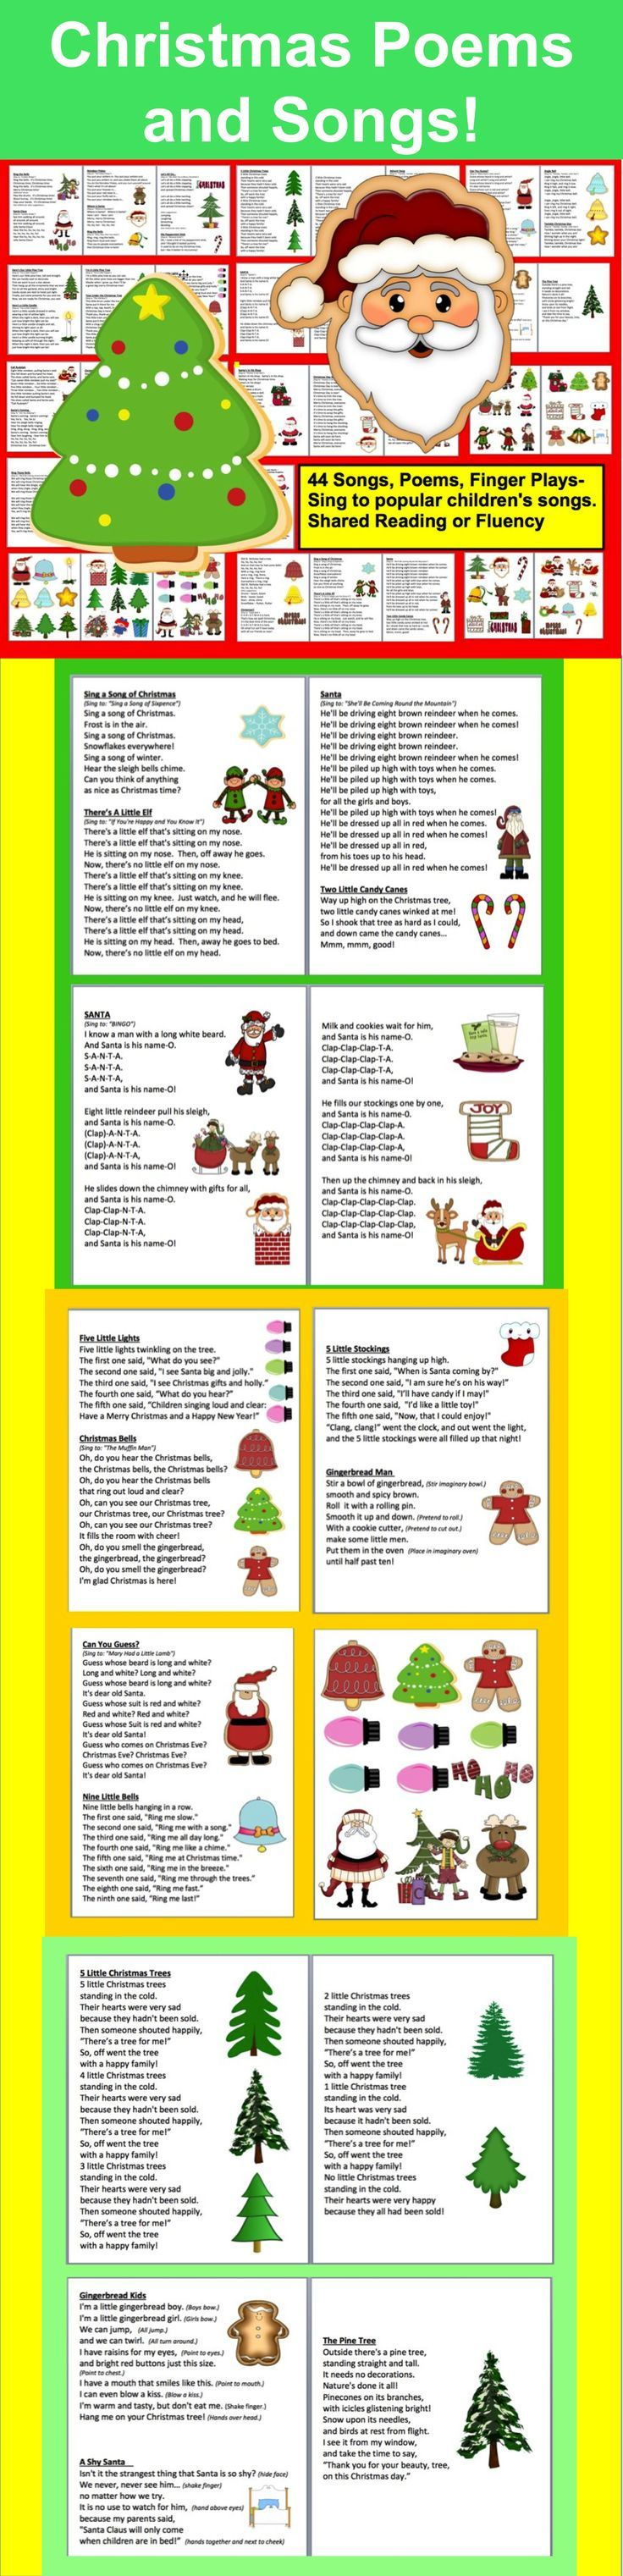 $ Christmas Poems/Songs/Finger Plays and Chants –  36 page file –  All Illustrated with Christmas Graphics- 46 Songs/Poems/Finger Plays and Chants- Prints nicely in color or grayscale- Just choose those you like, and print just those pages.